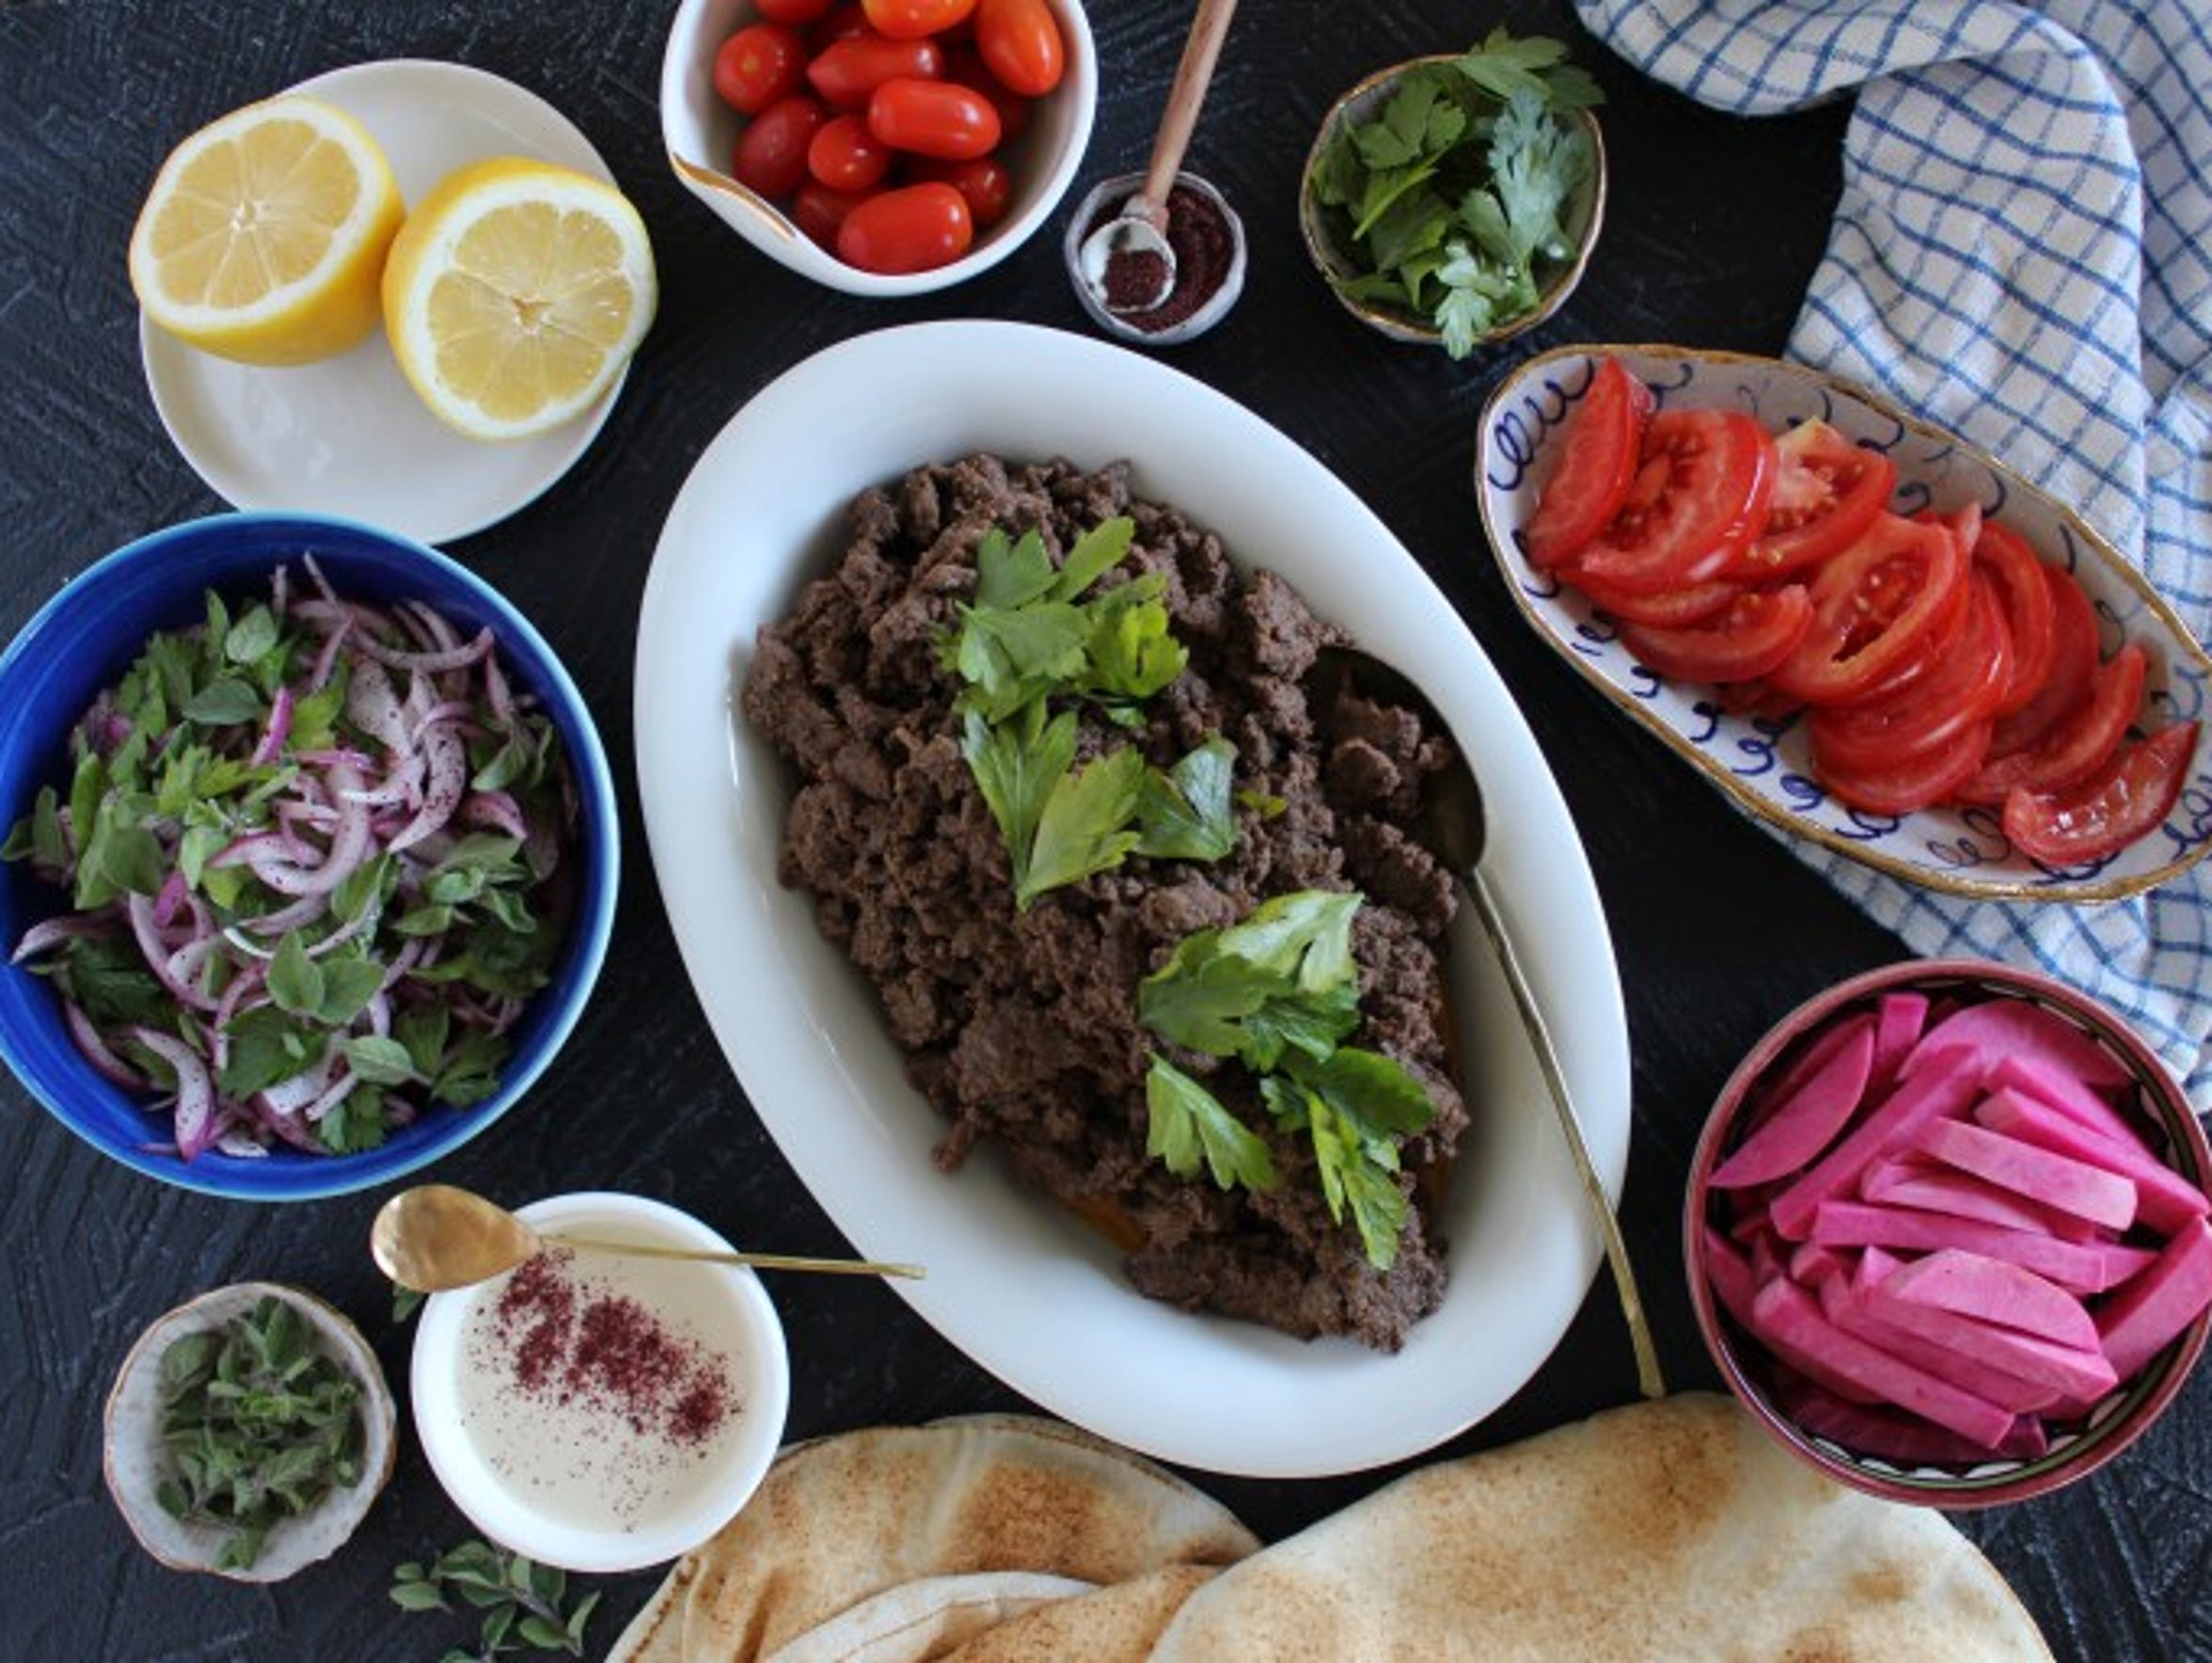 Beef shawarma with tahini.